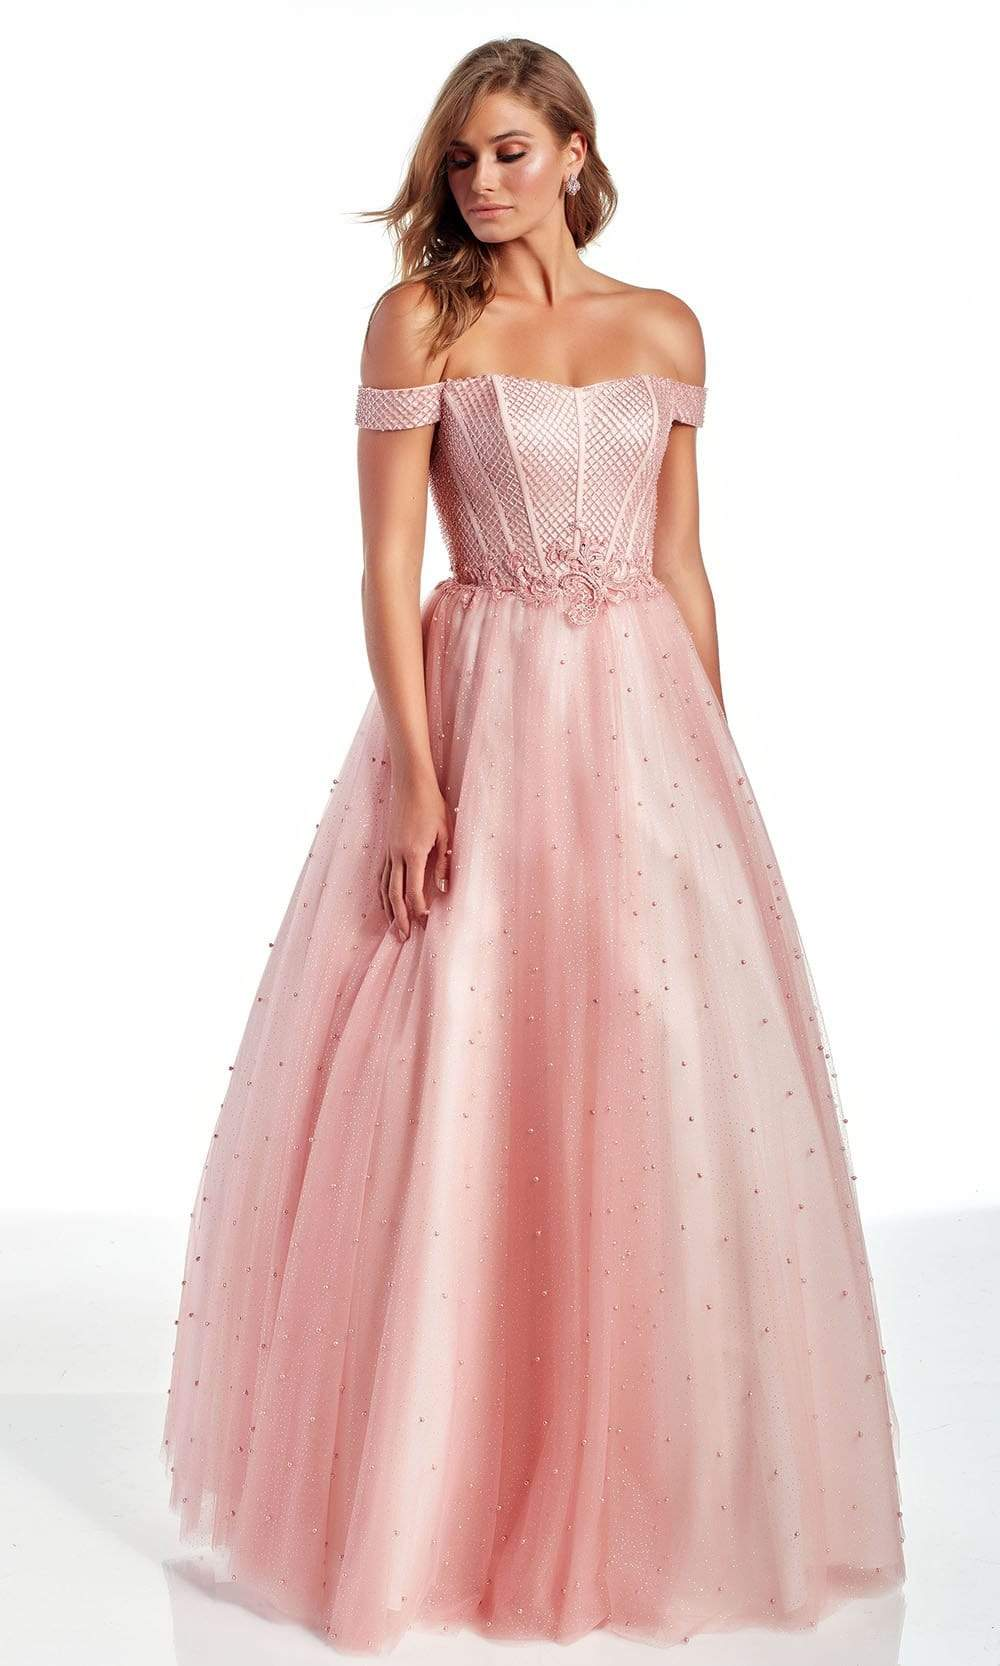 Alyce Paris - 60899 Off Shoulder Bodice Beaded Tulle A-Line Gown from Alyce Paris